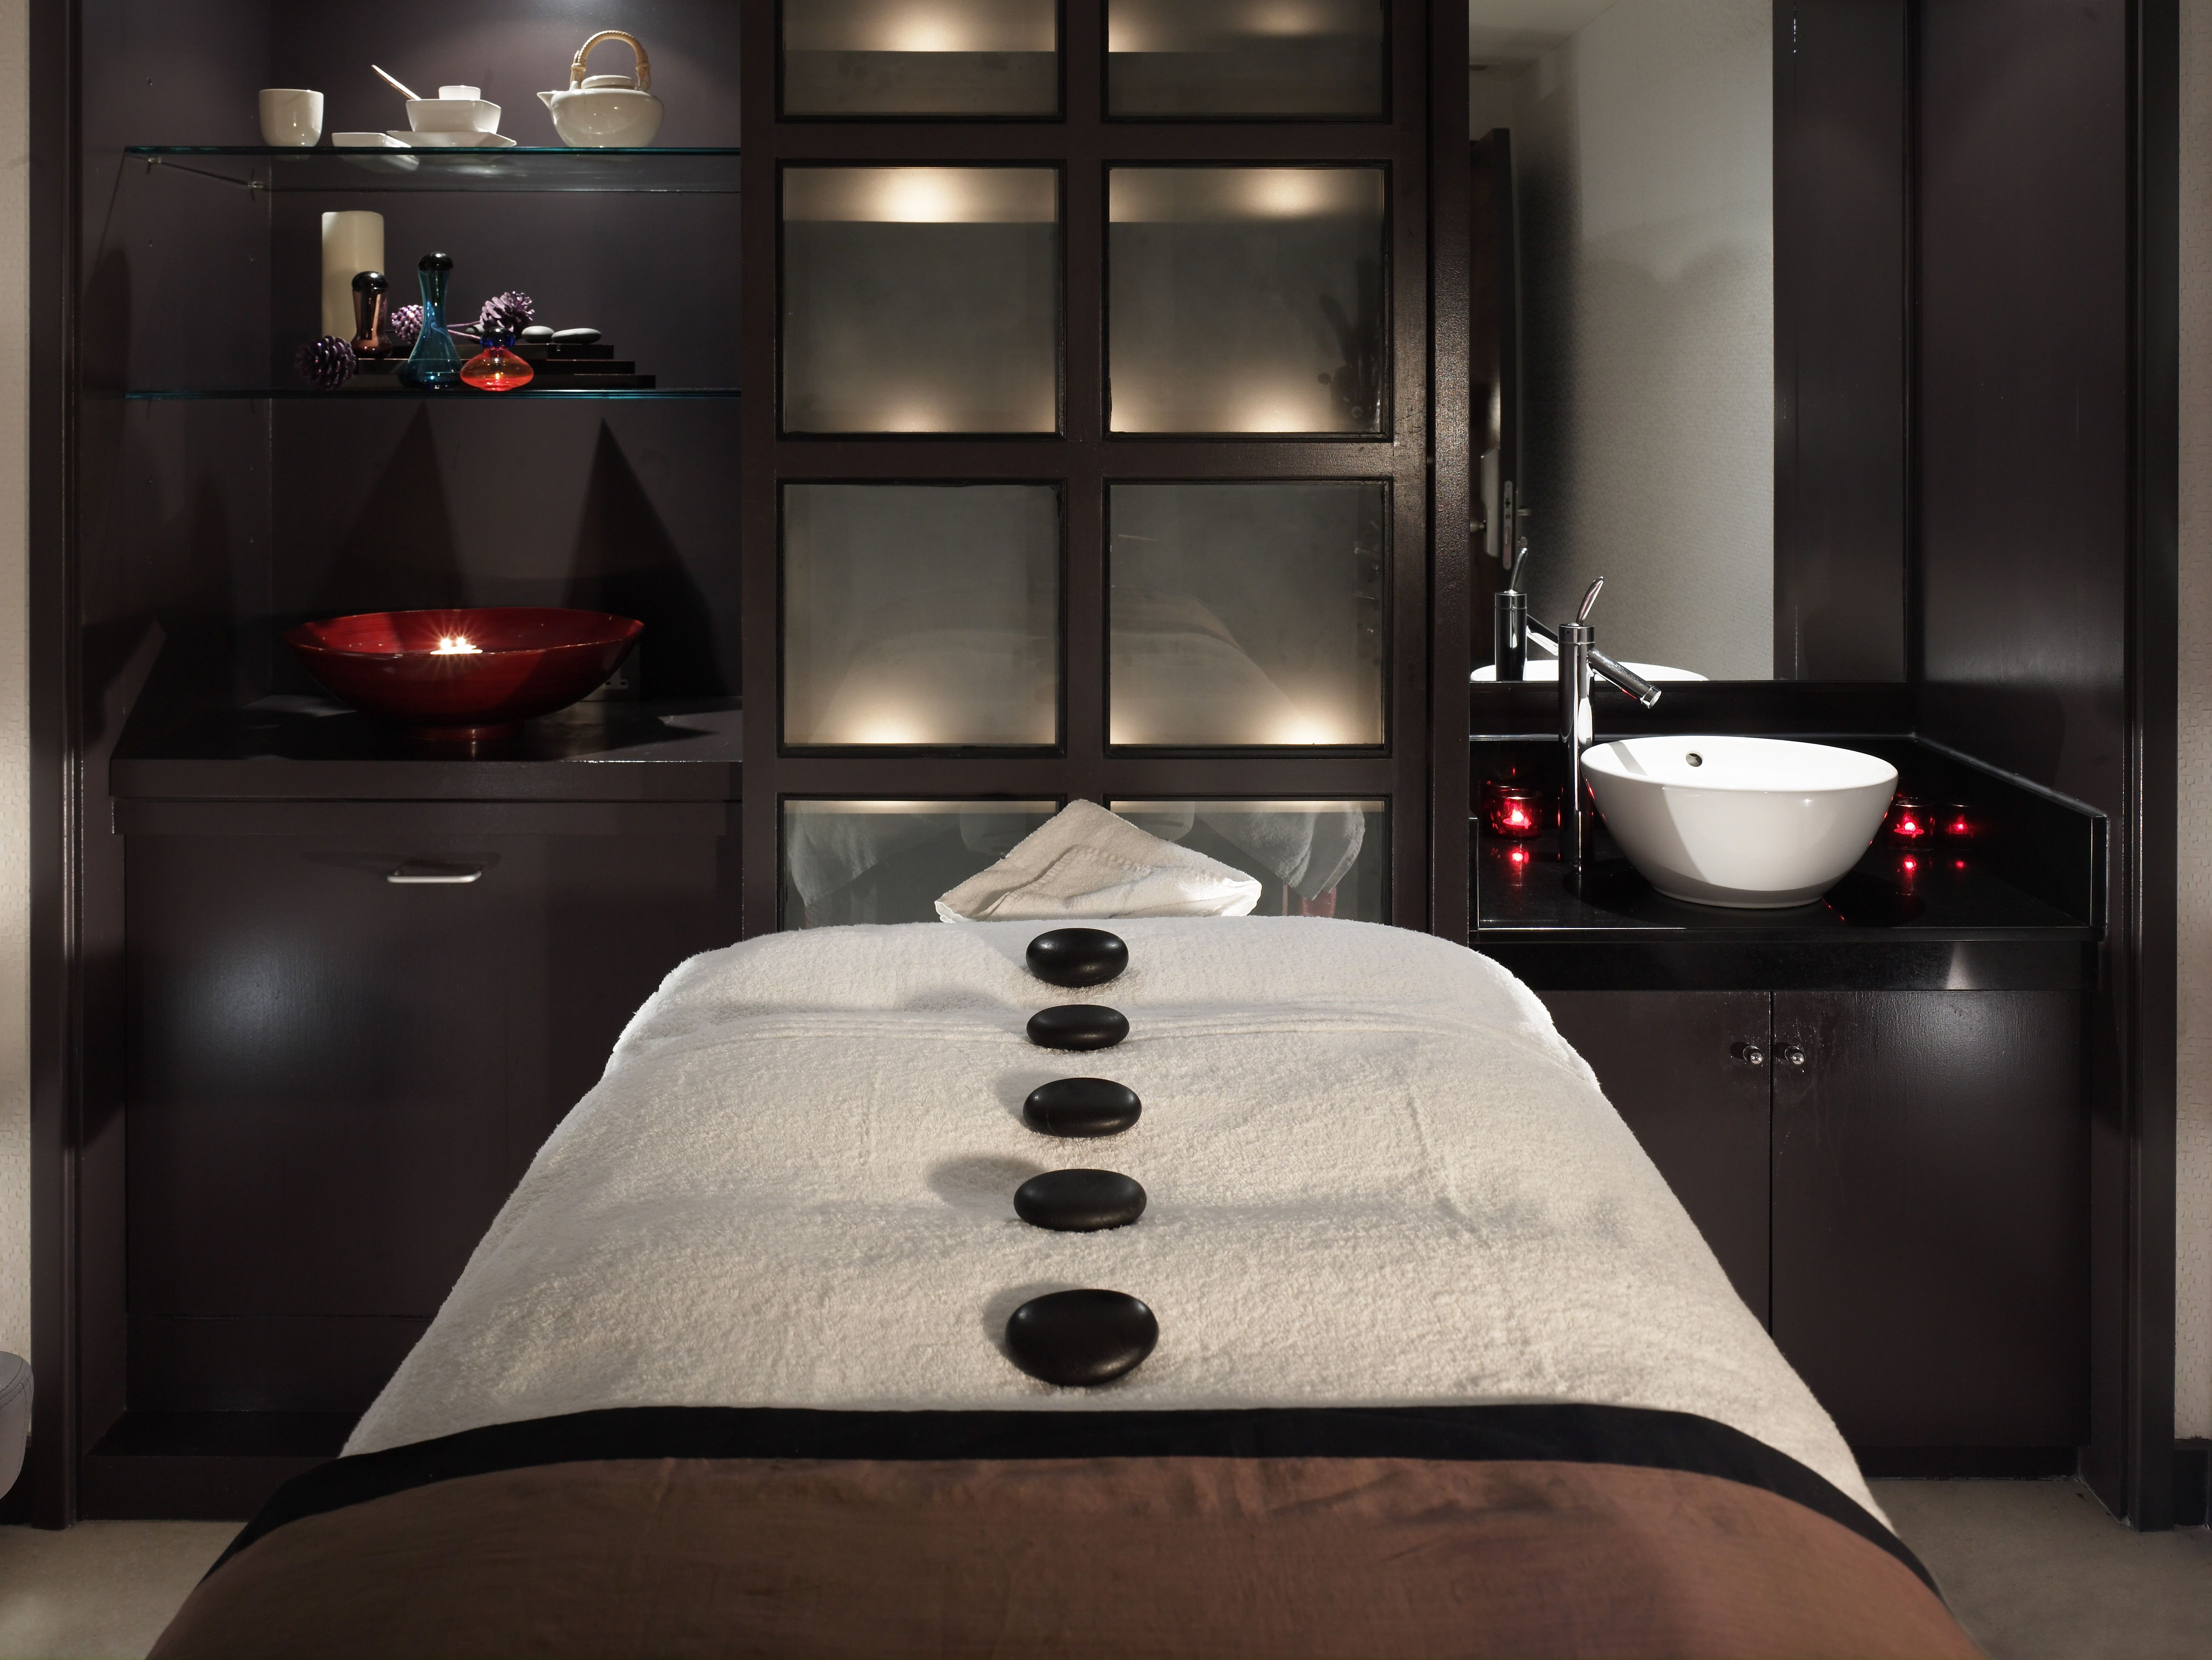 ambiance spa pinterest ambiance salon et esth tique. Black Bedroom Furniture Sets. Home Design Ideas